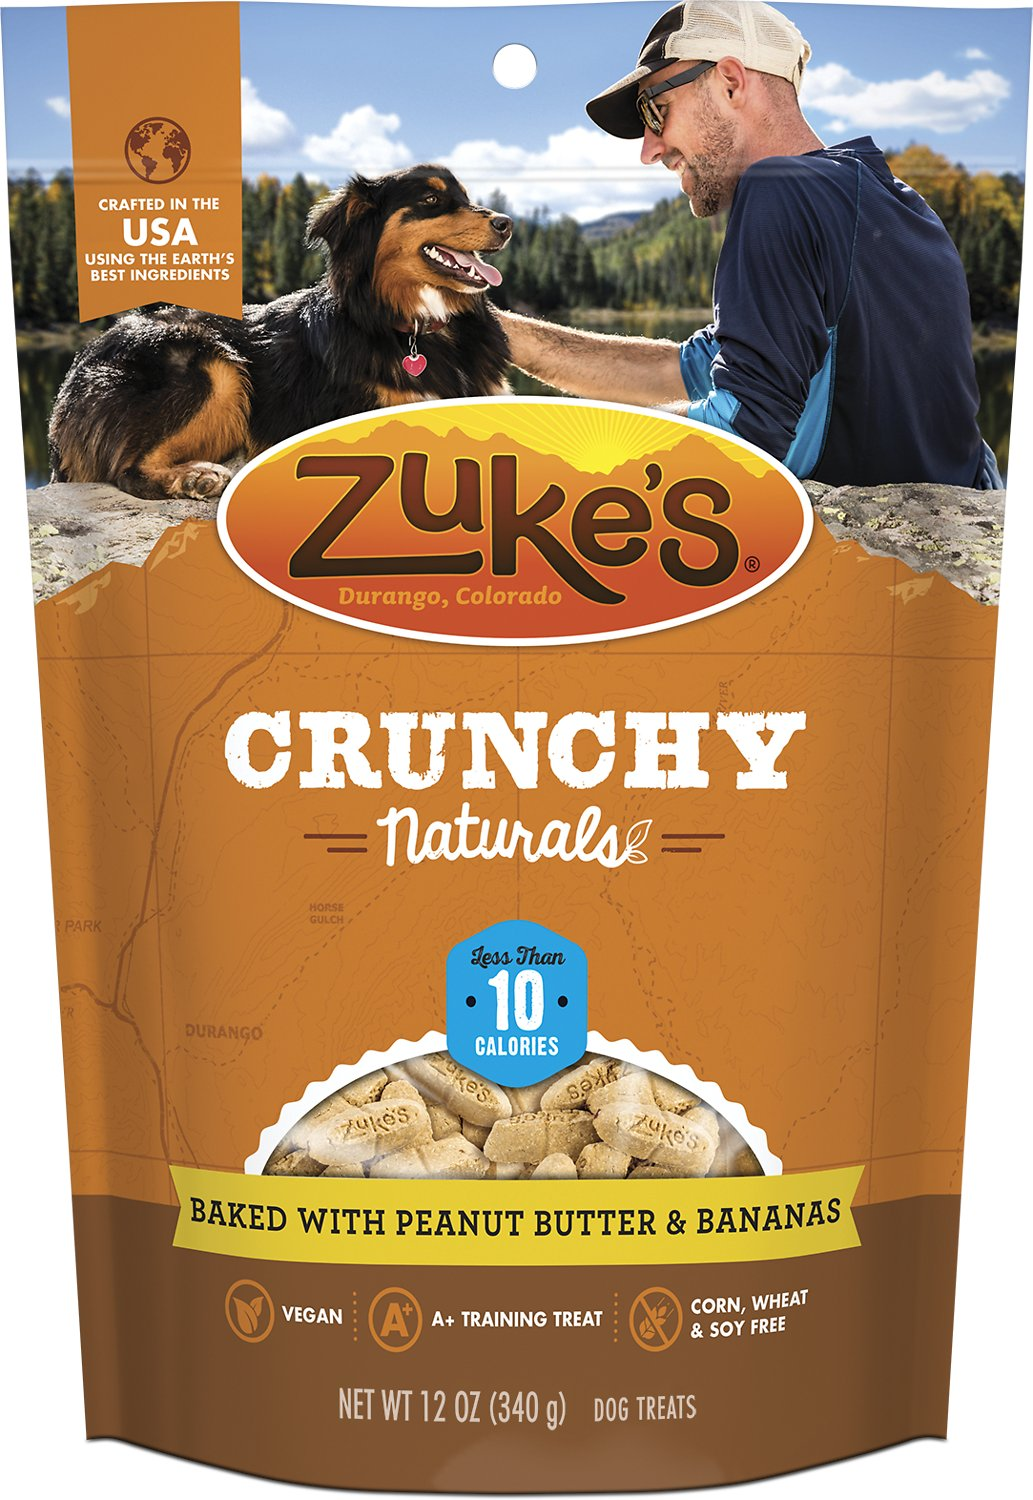 Zuke's Crunchy Naturals 10s Baked With Peanut Butter & Bananas Dog Treats, 12-oz bag (Weights: 12 ounces) Image